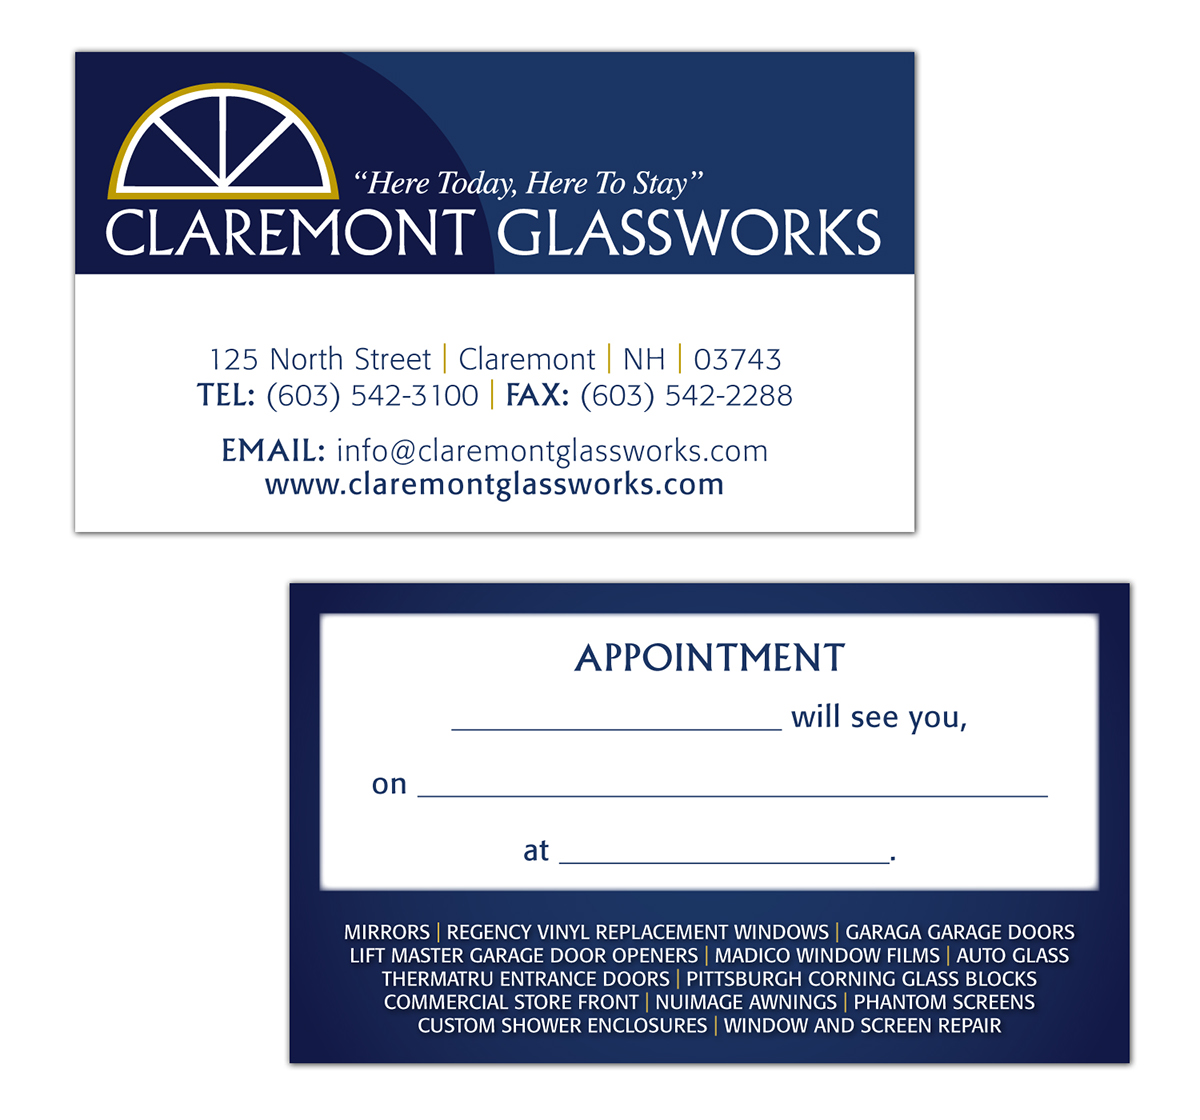 Claremont Glassworks Business Cards on Behance